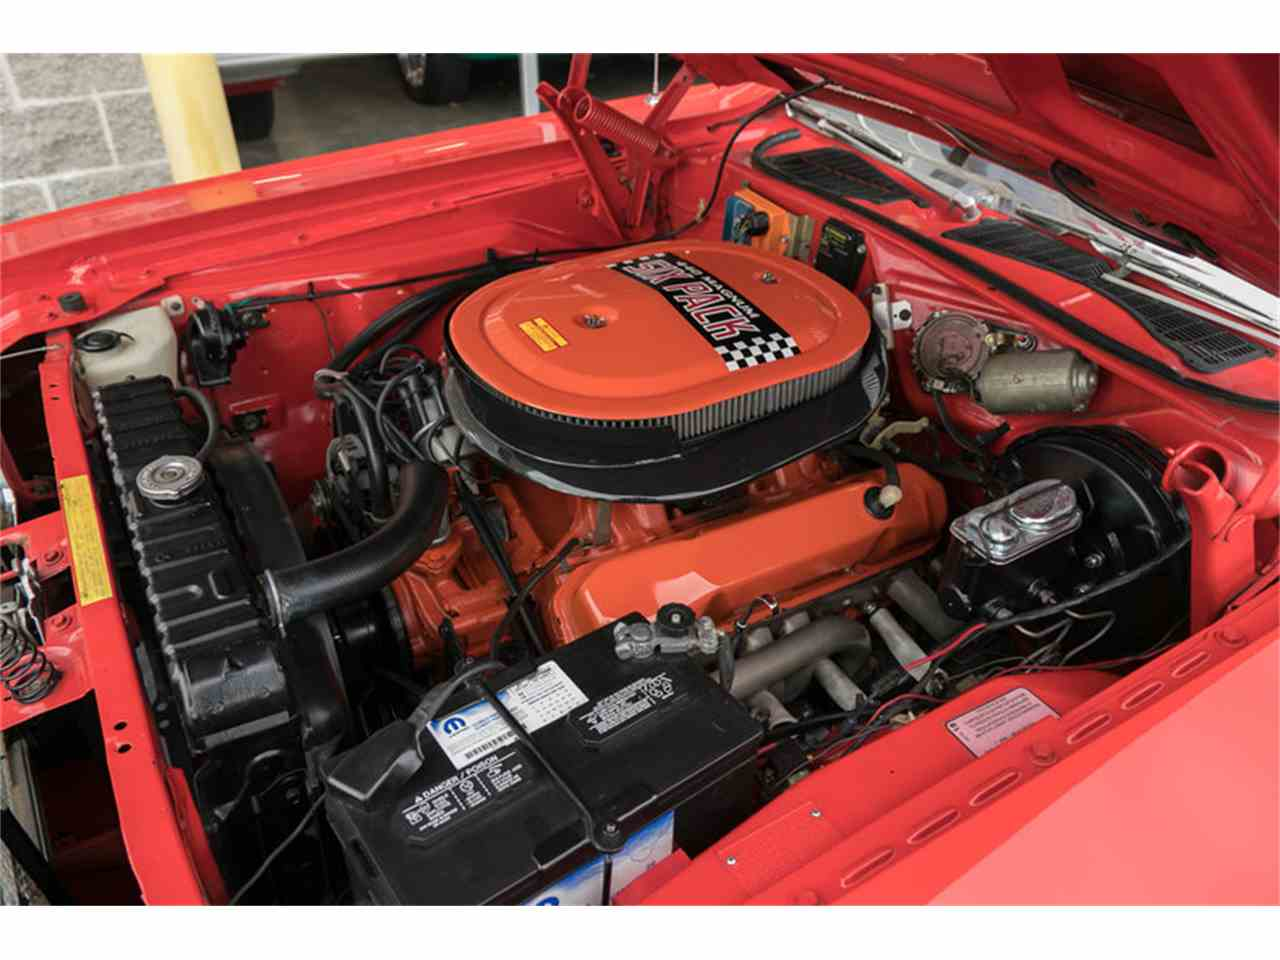 Large Picture of Classic '70 Dodge Challenger R/T located in St. Charles Missouri - $89,995.00 Offered by Fast Lane Classic Cars Inc. - MF41